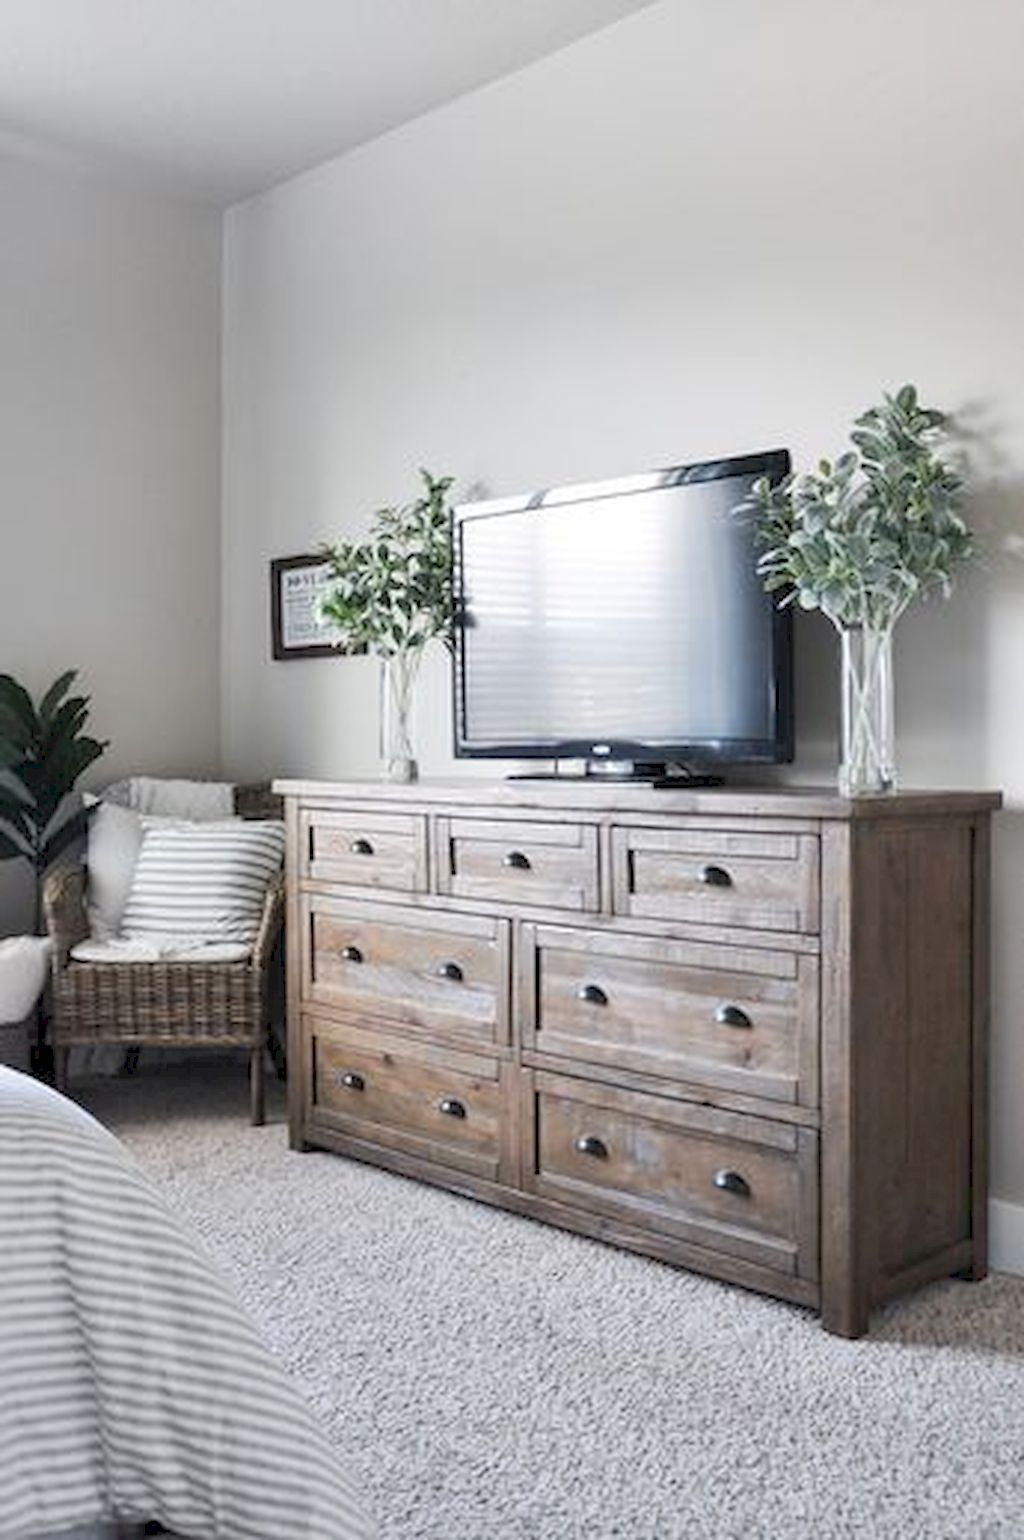 pin by julia stone on home home decor farmhouse master bedroom rh pinterest com